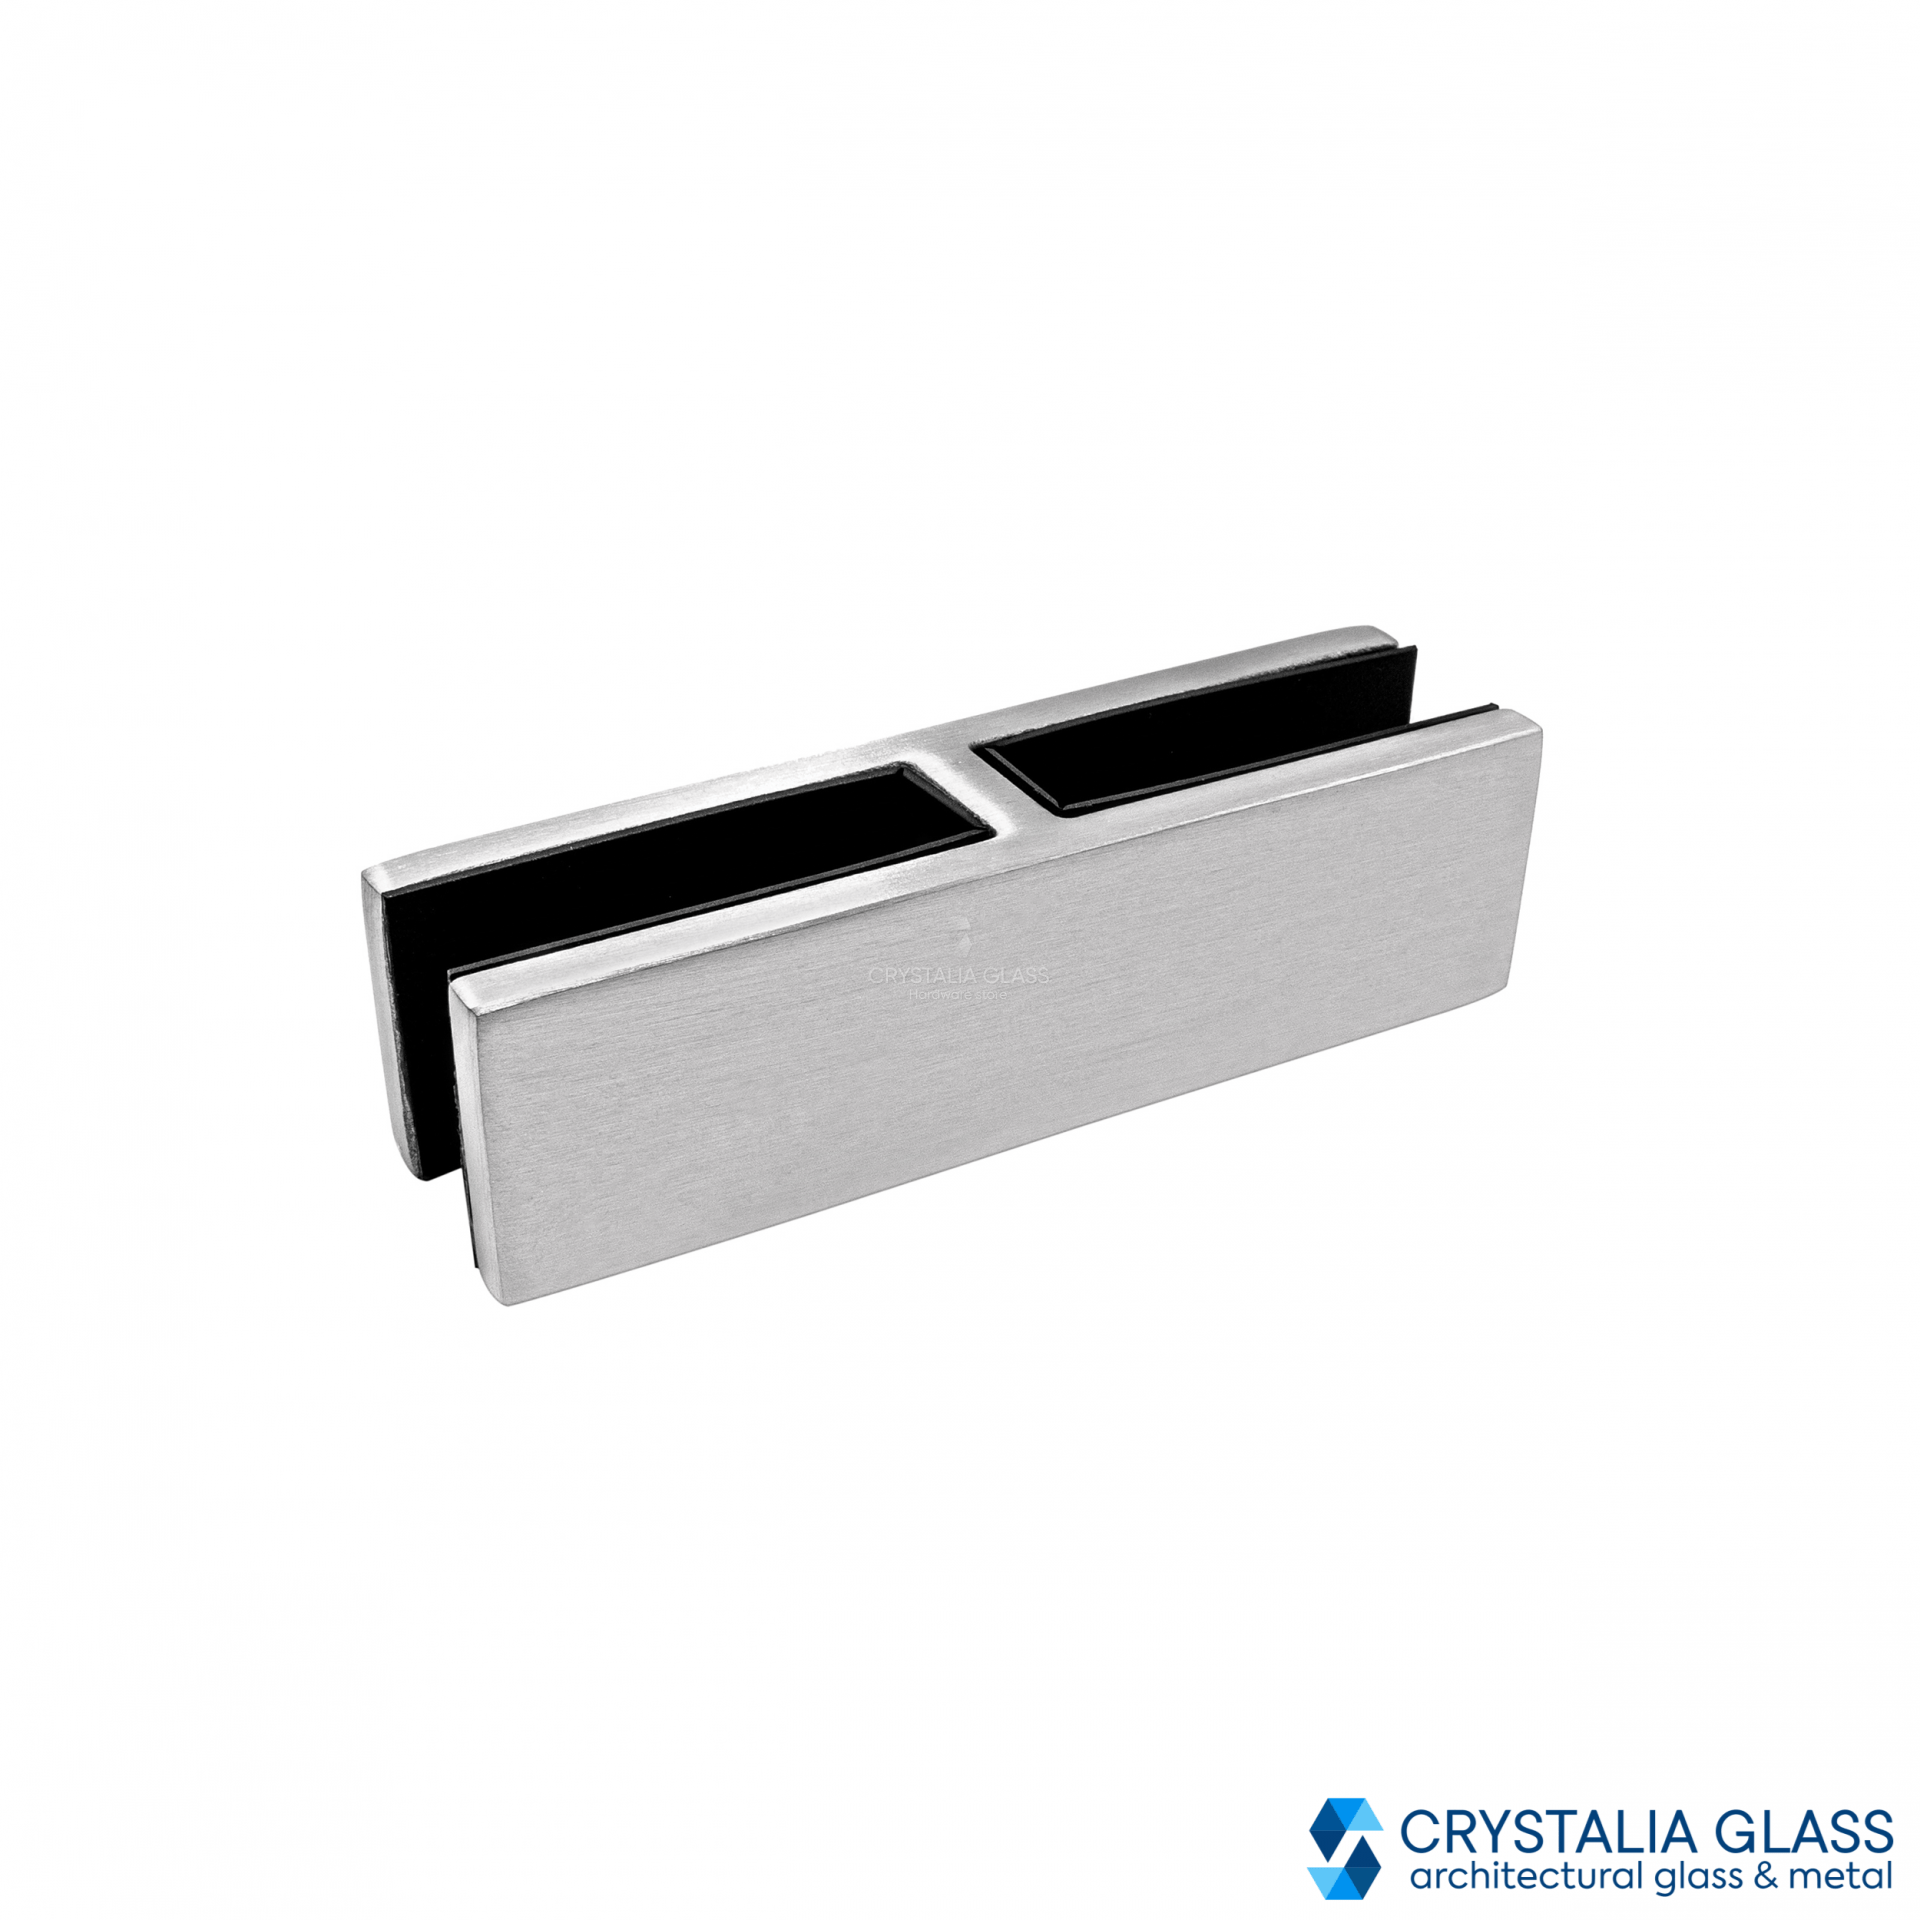 CG Brushed Stainless 180 Degree Glass Clamp